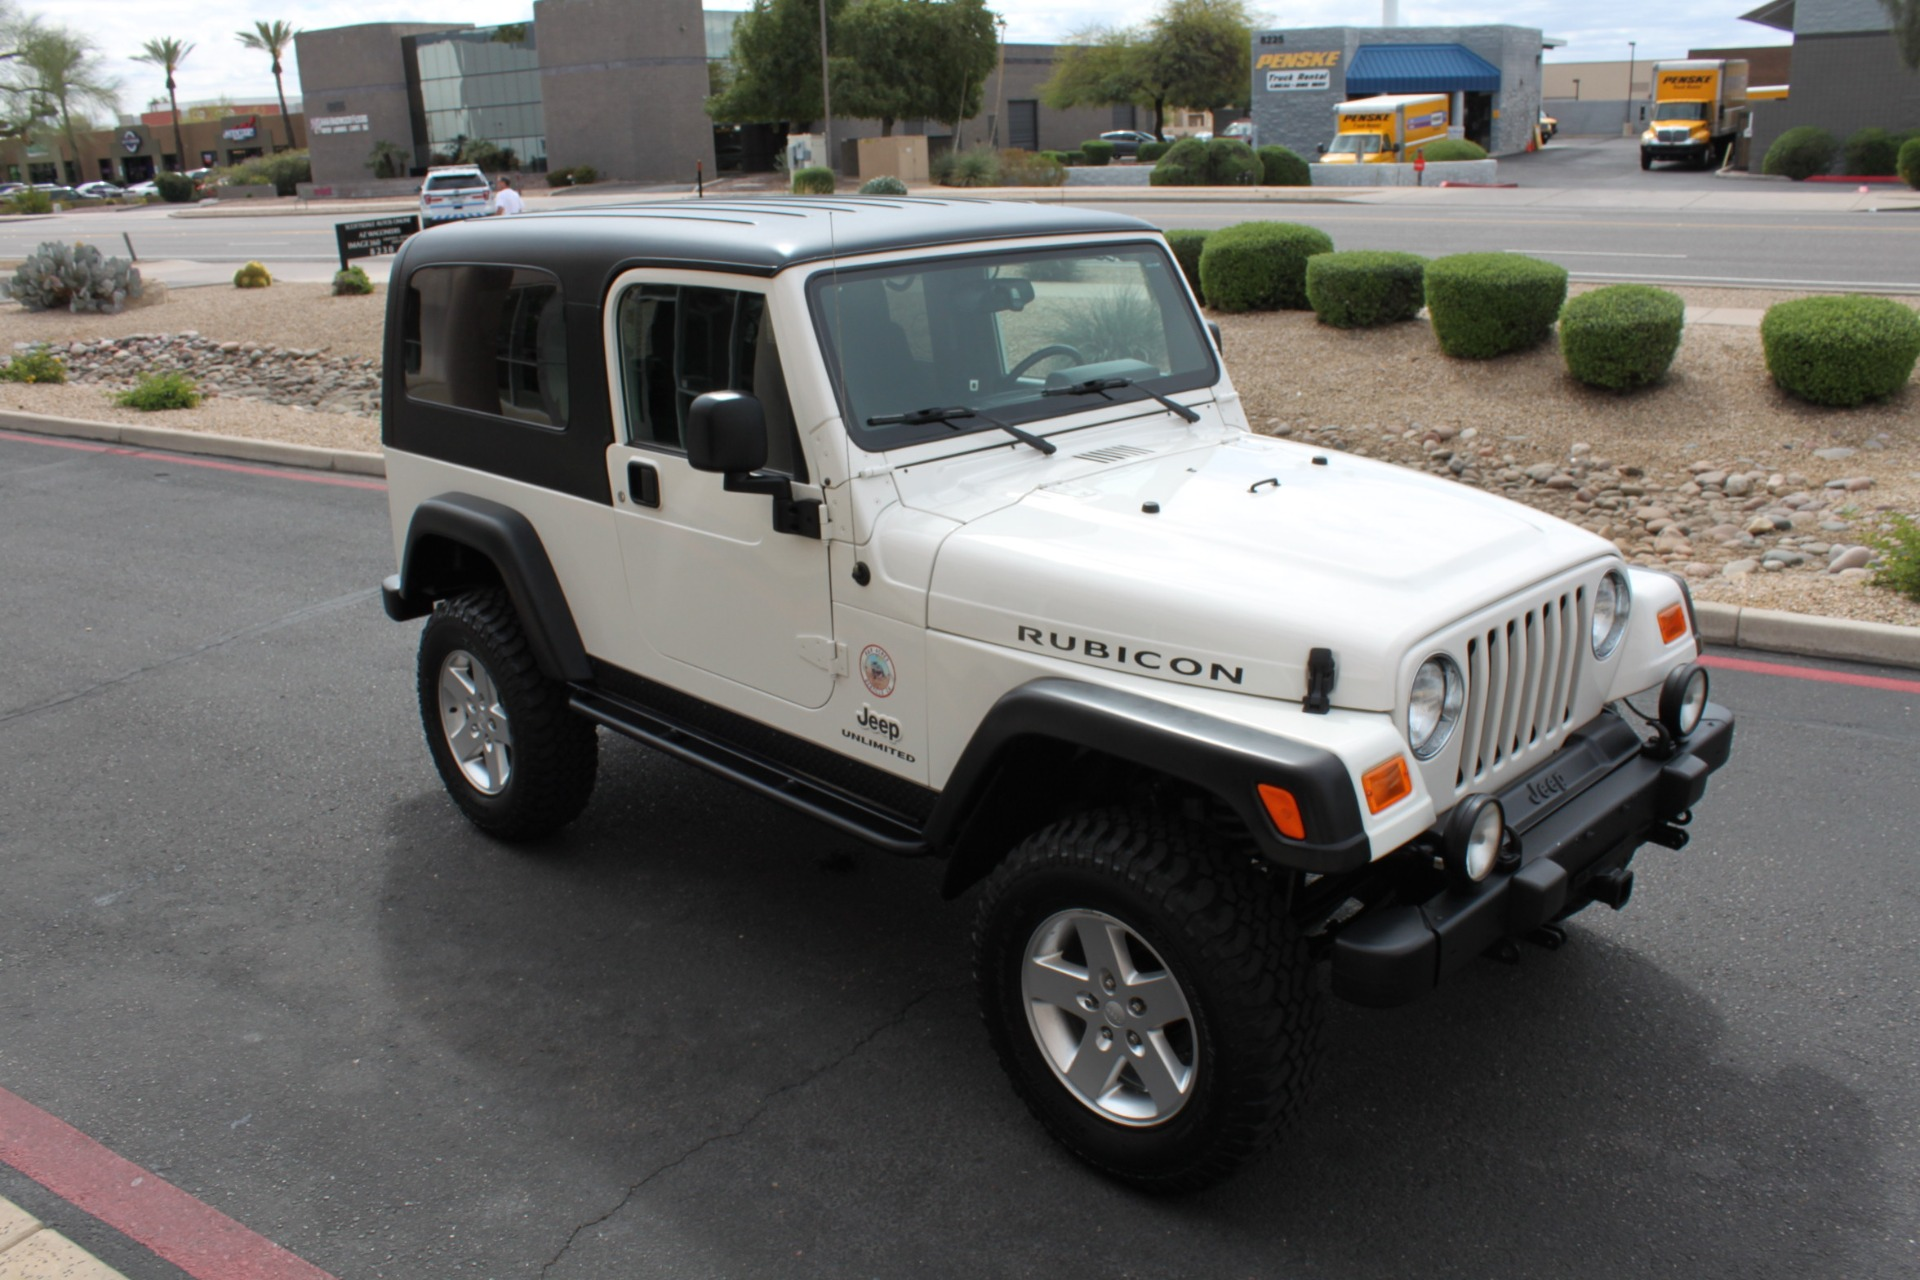 Used-2006-Jeep-Wrangler-Unlimited-Rubicon-LWB-Fiat